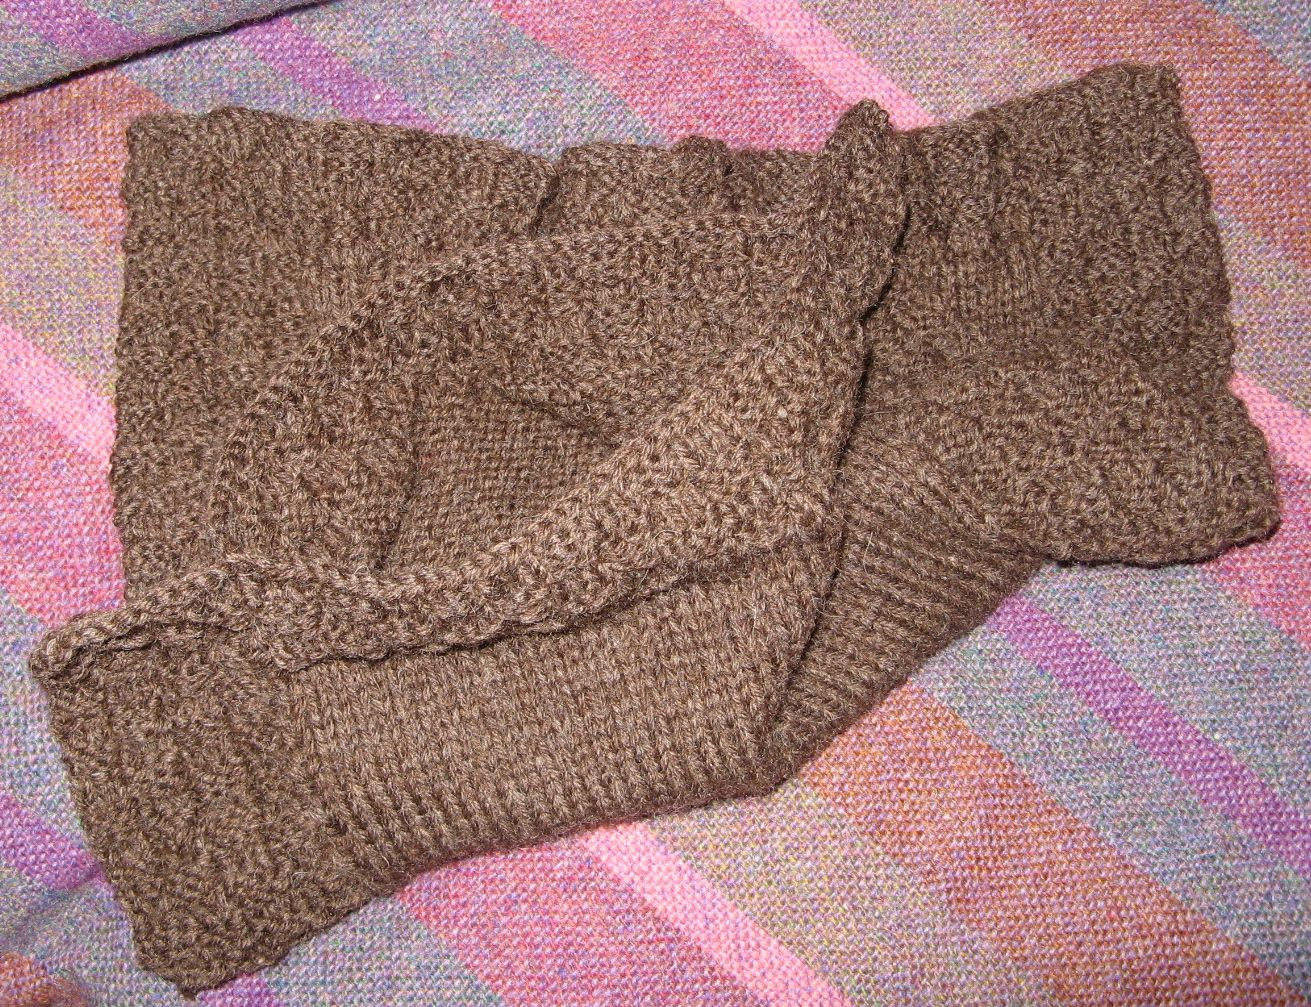 sofa feet covers rugs to match brown one more stitch foot or warmers